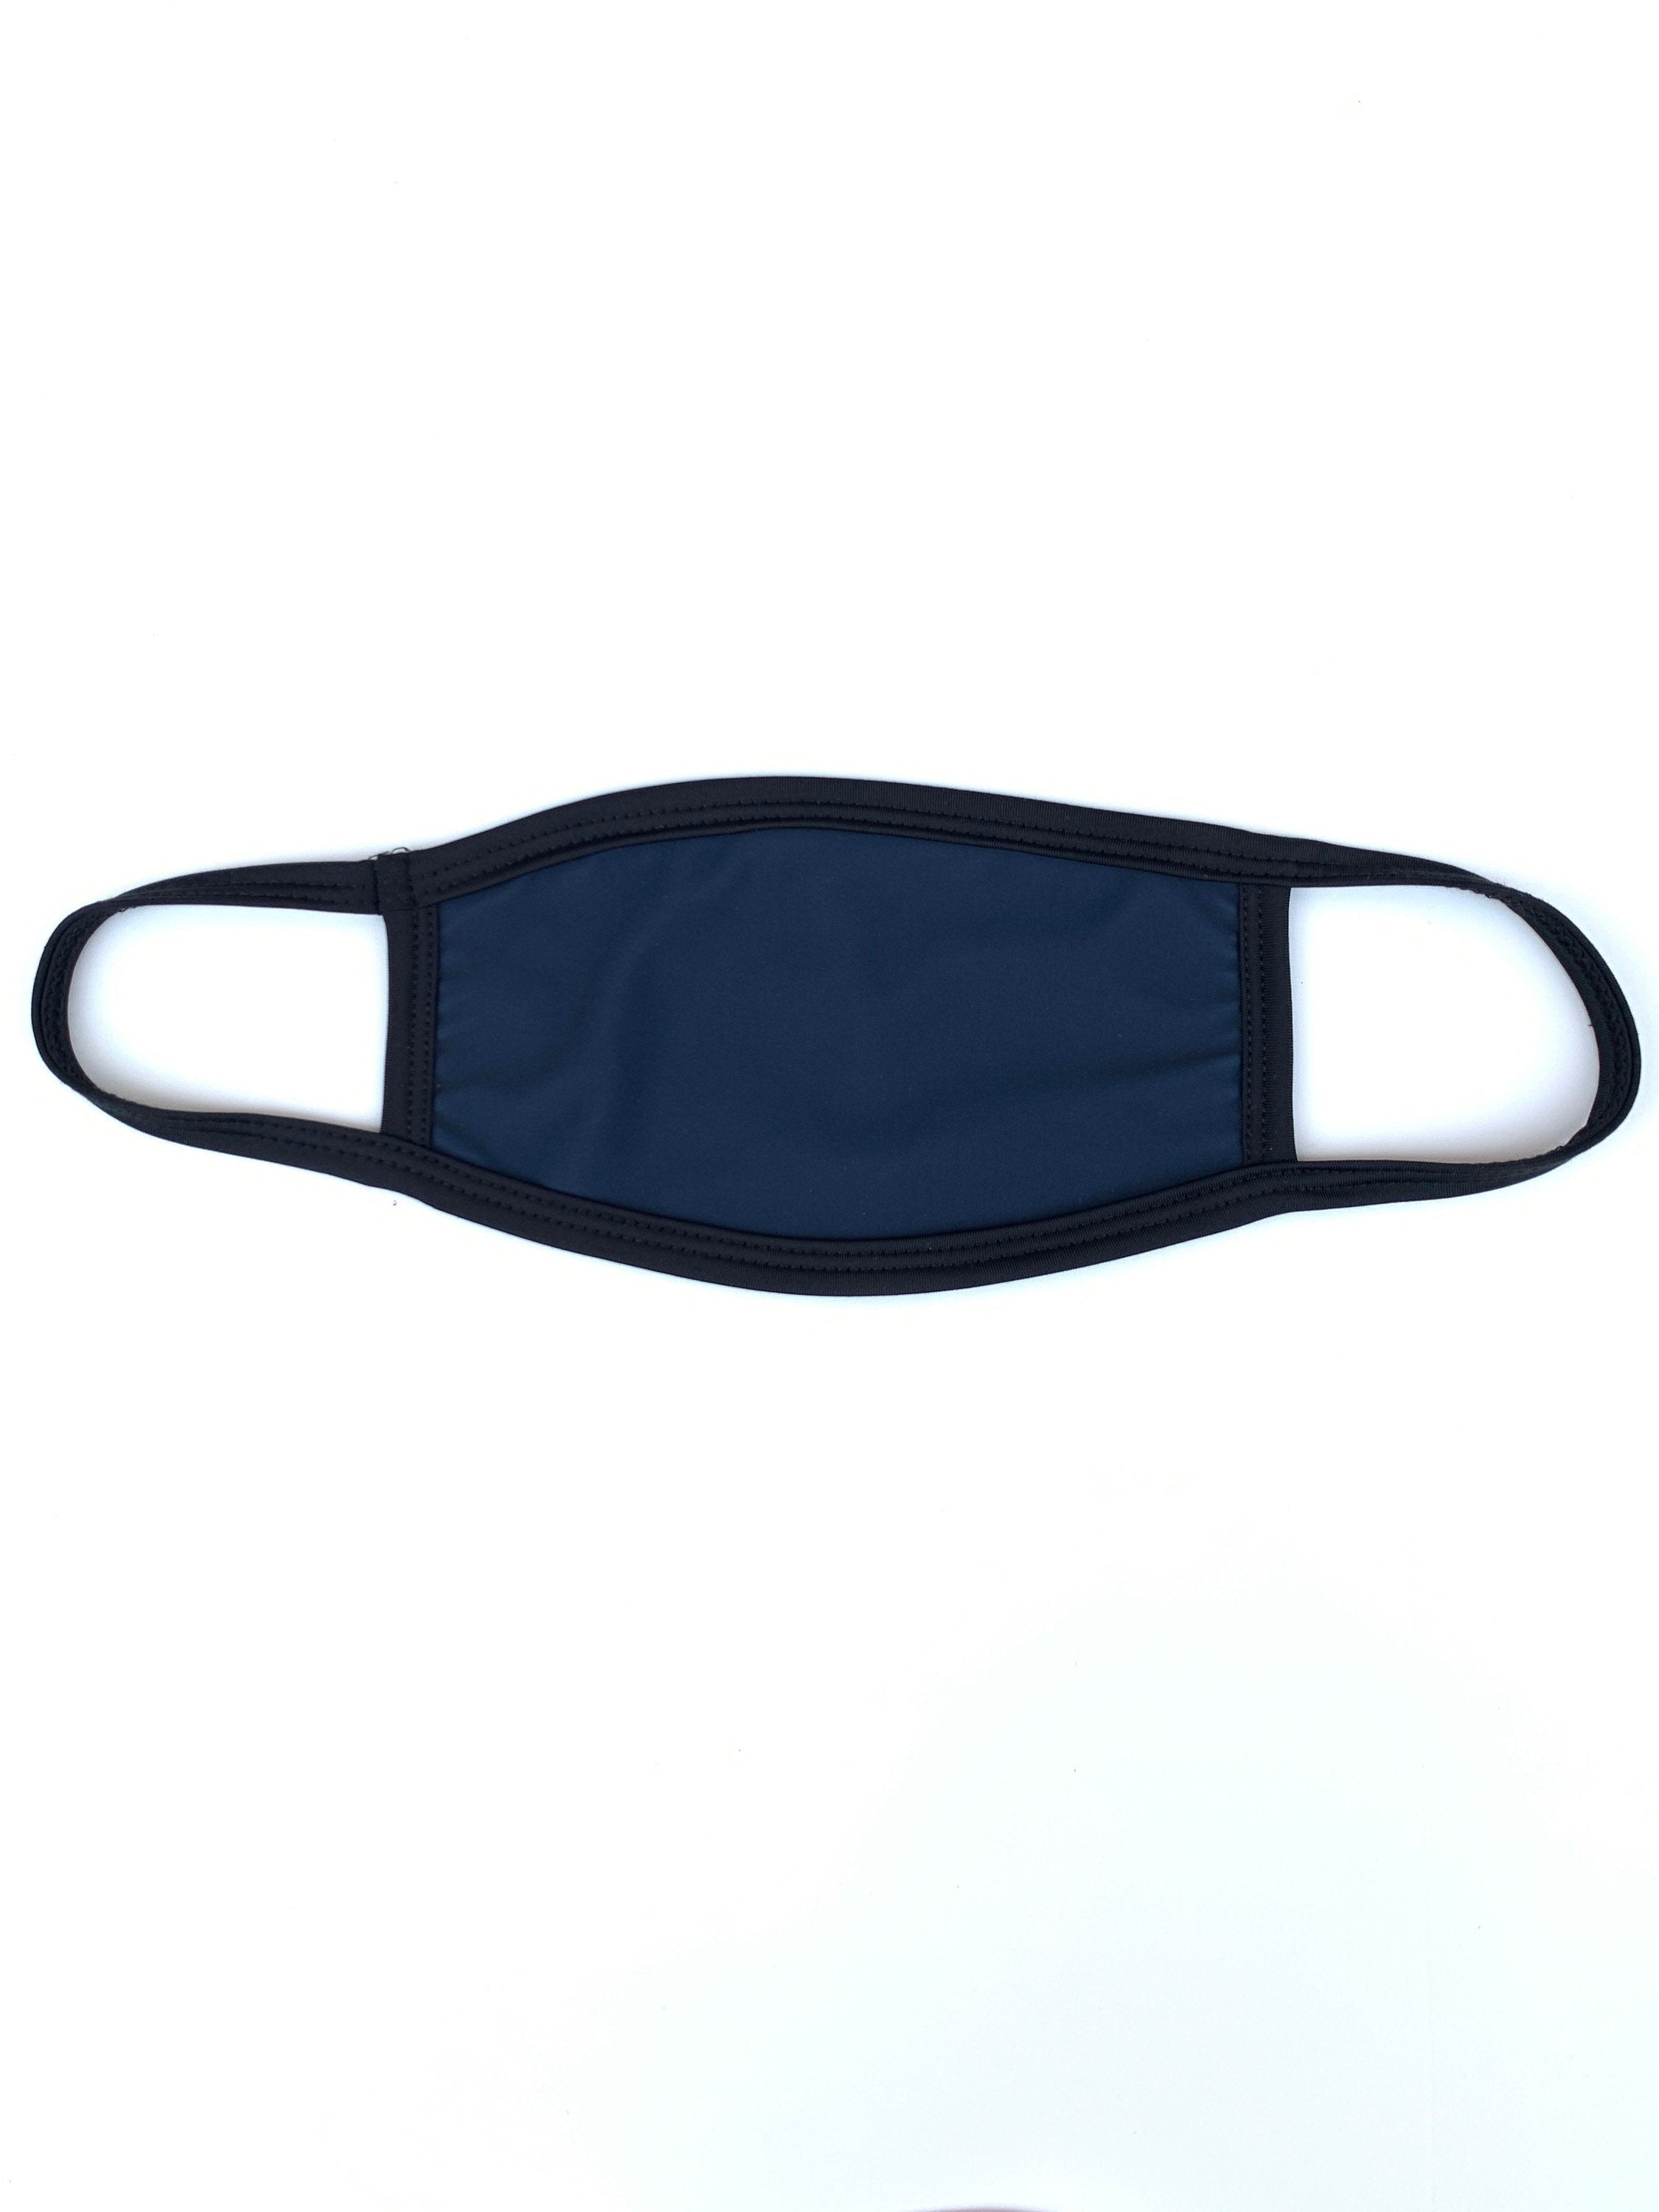 Black Double-Layered Polyester Nylon Face Mask